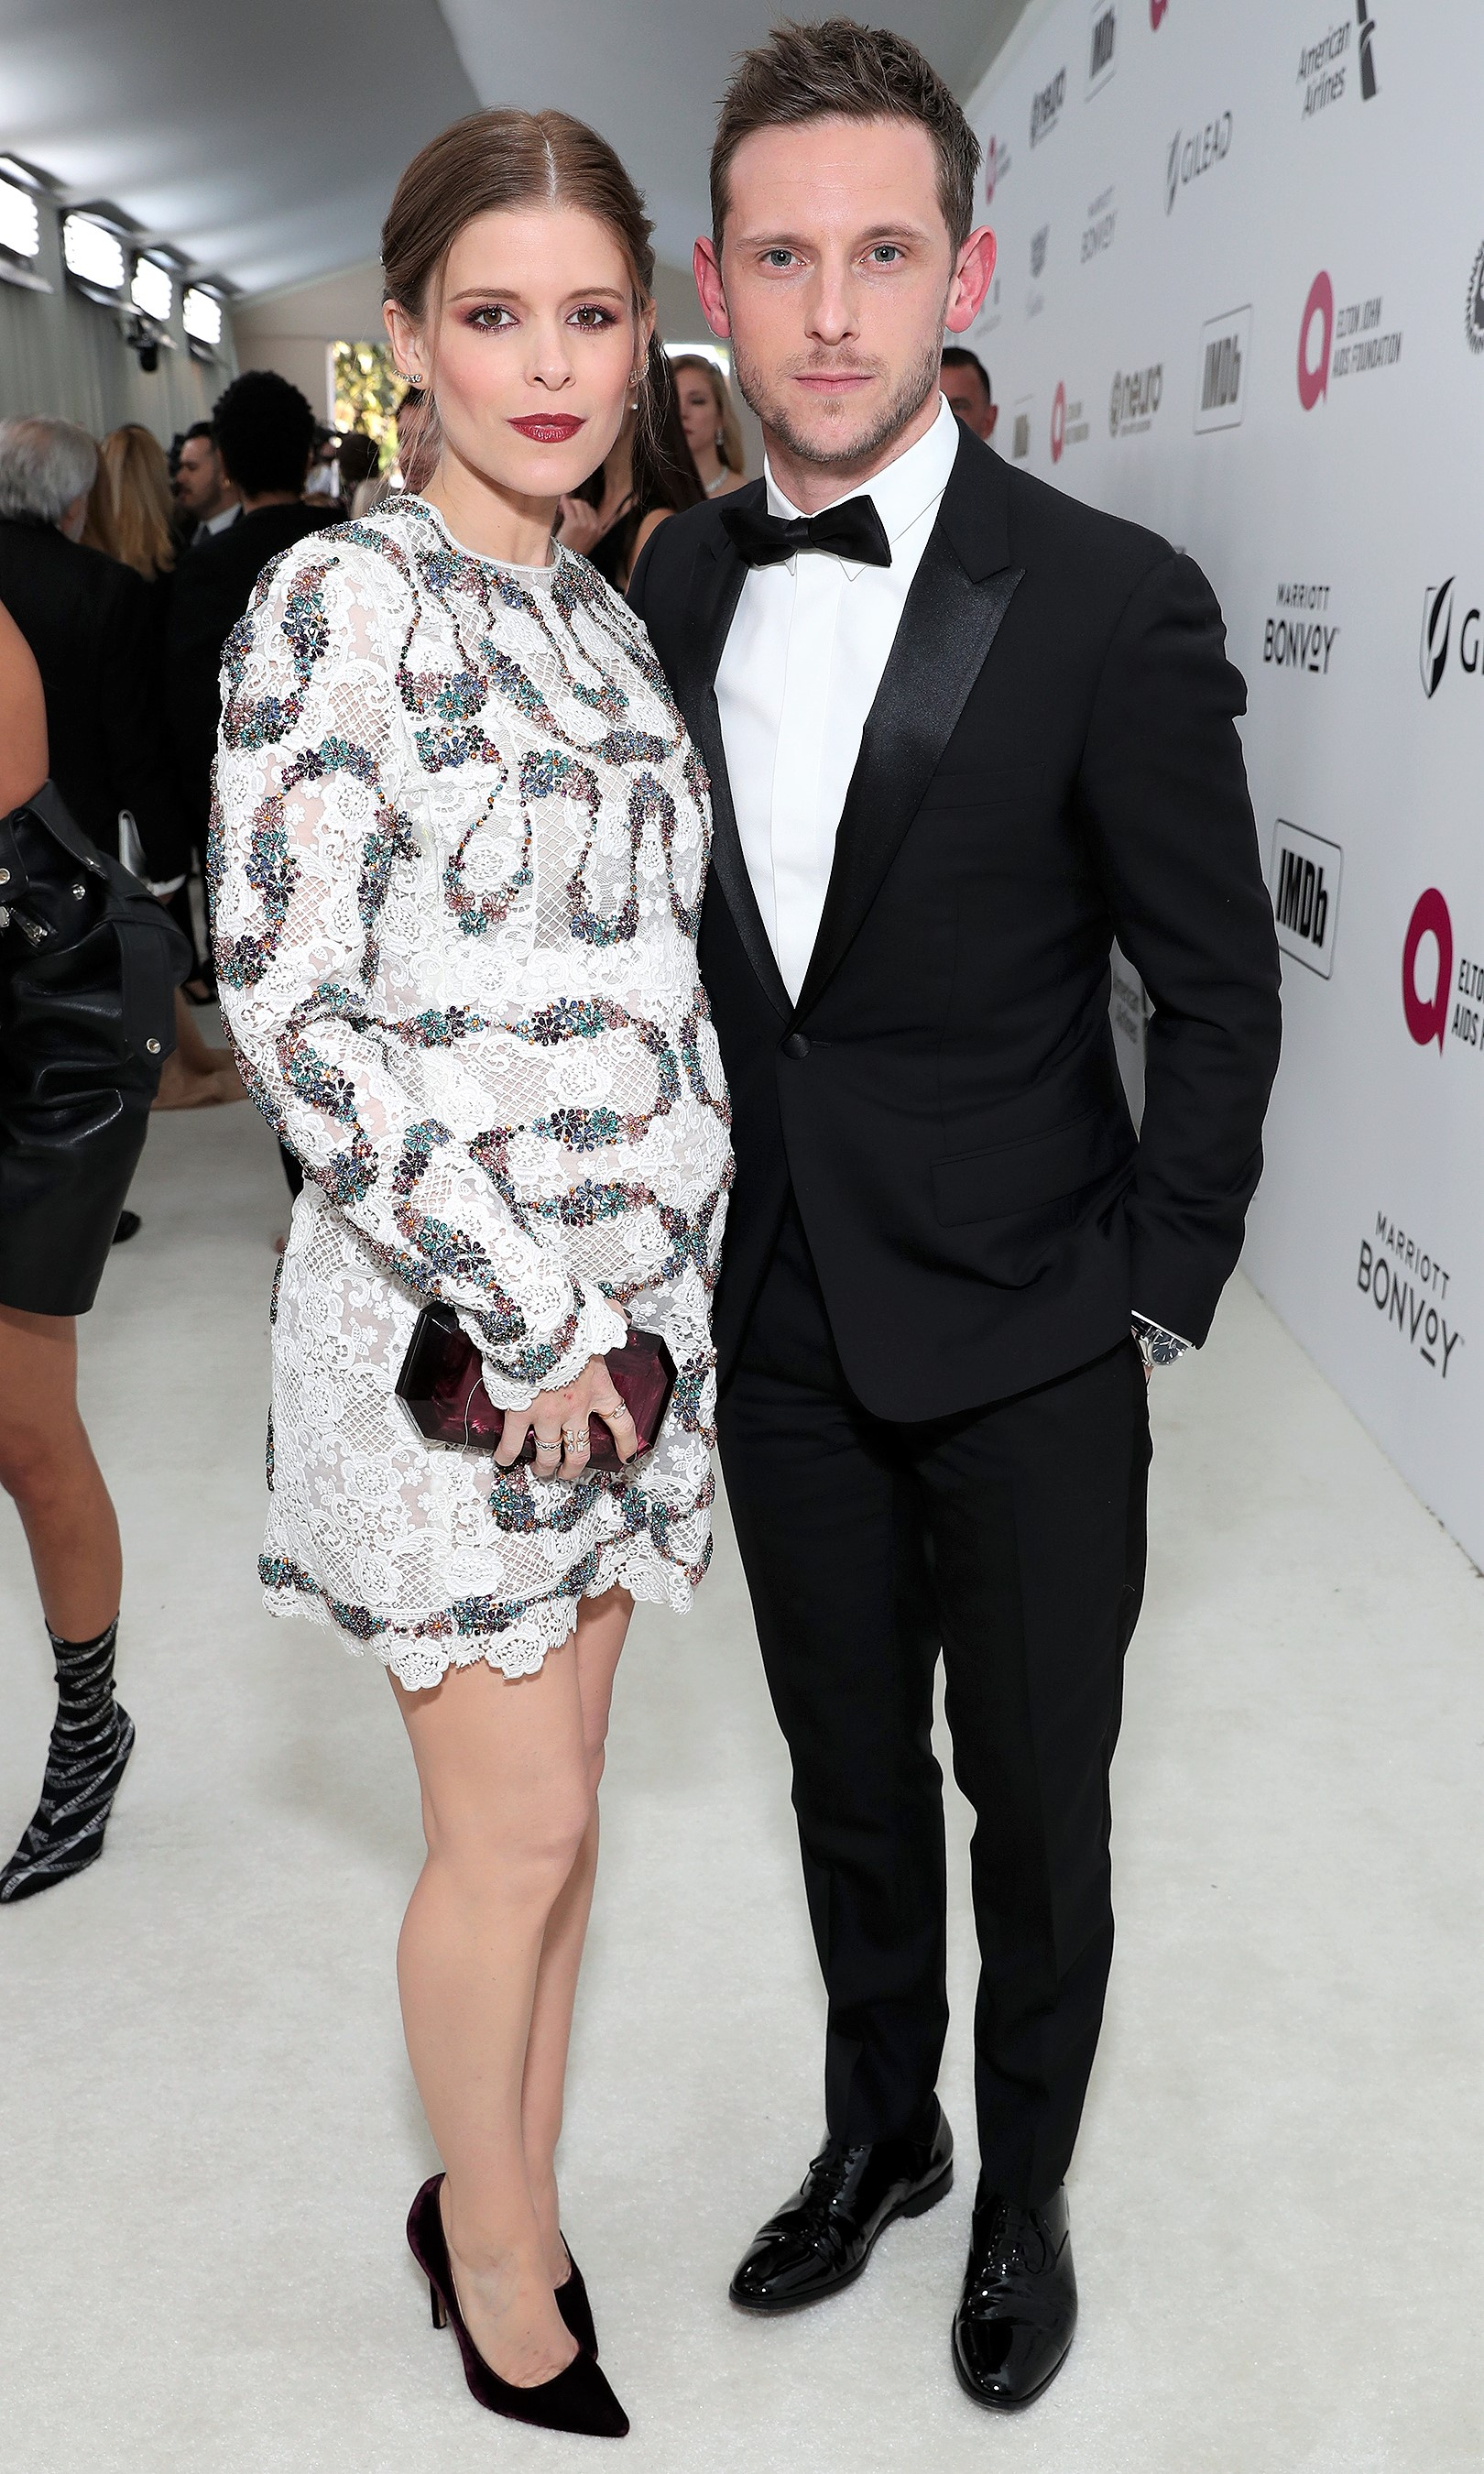 Kate Mara Is Pregnant! Actress and Husband Jamie Bell Expecting First Child Together